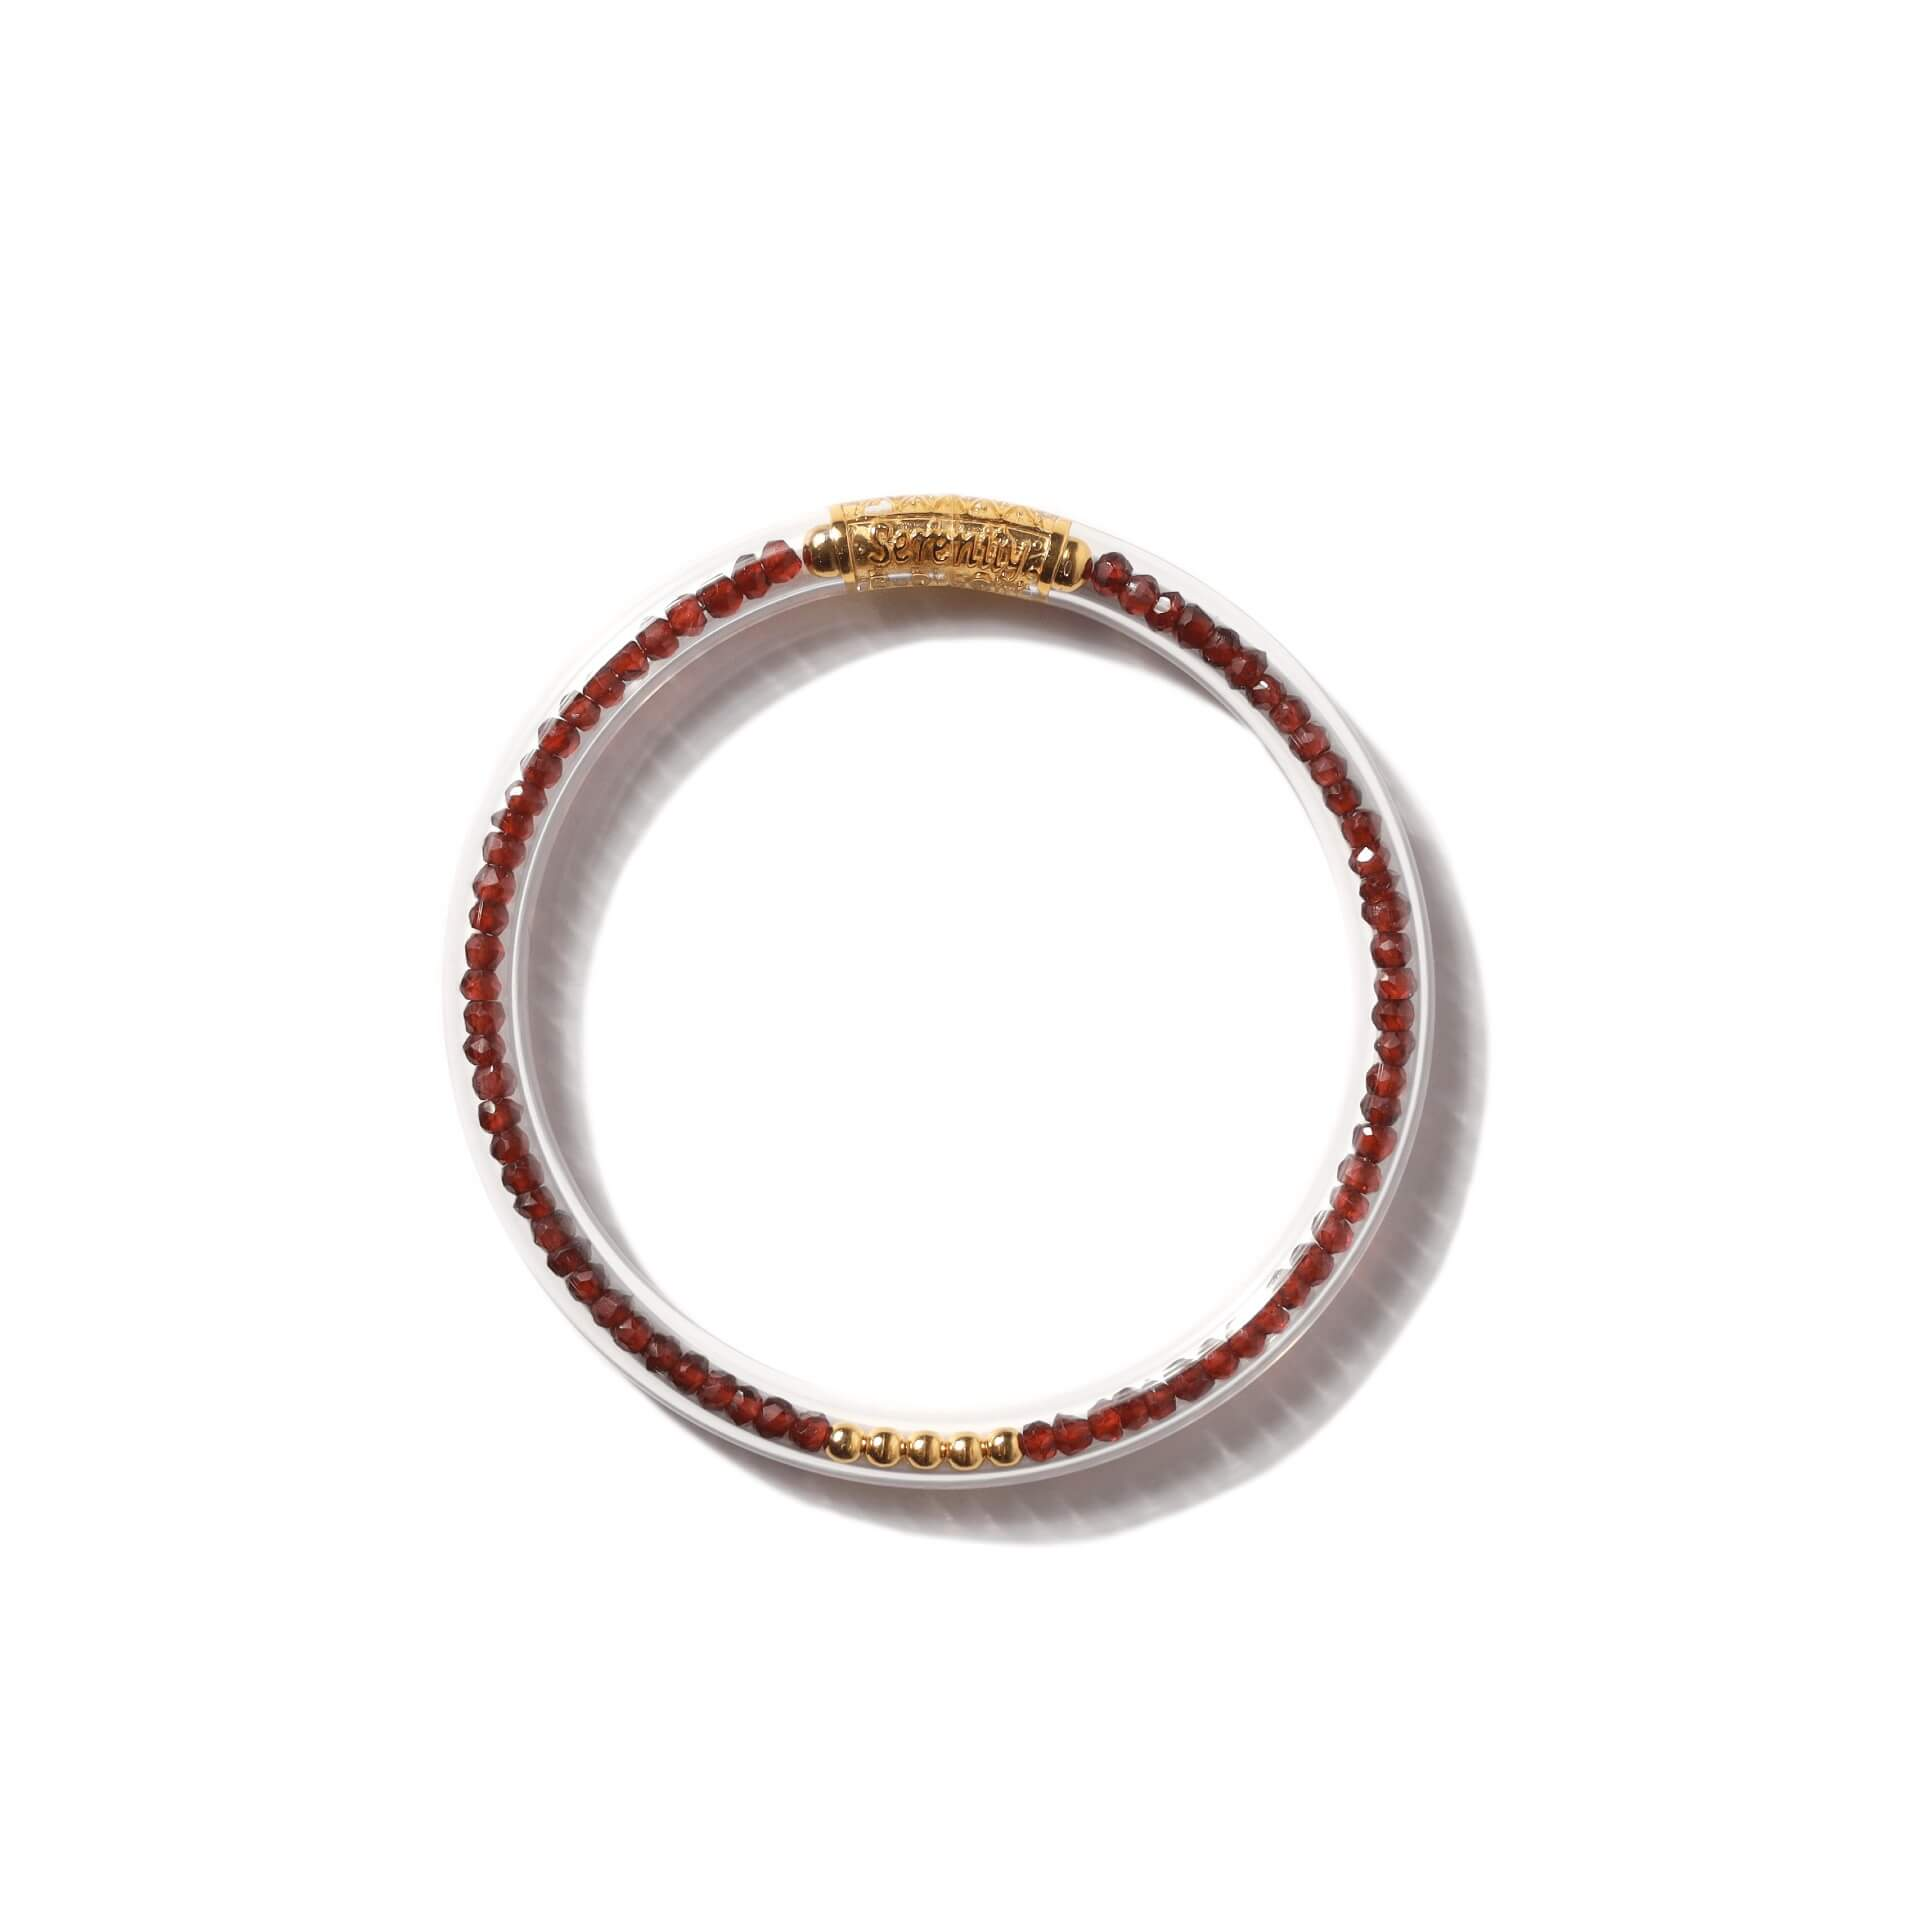 Luxe All Weather Bangle - Red Garnet | BuDhaGirl